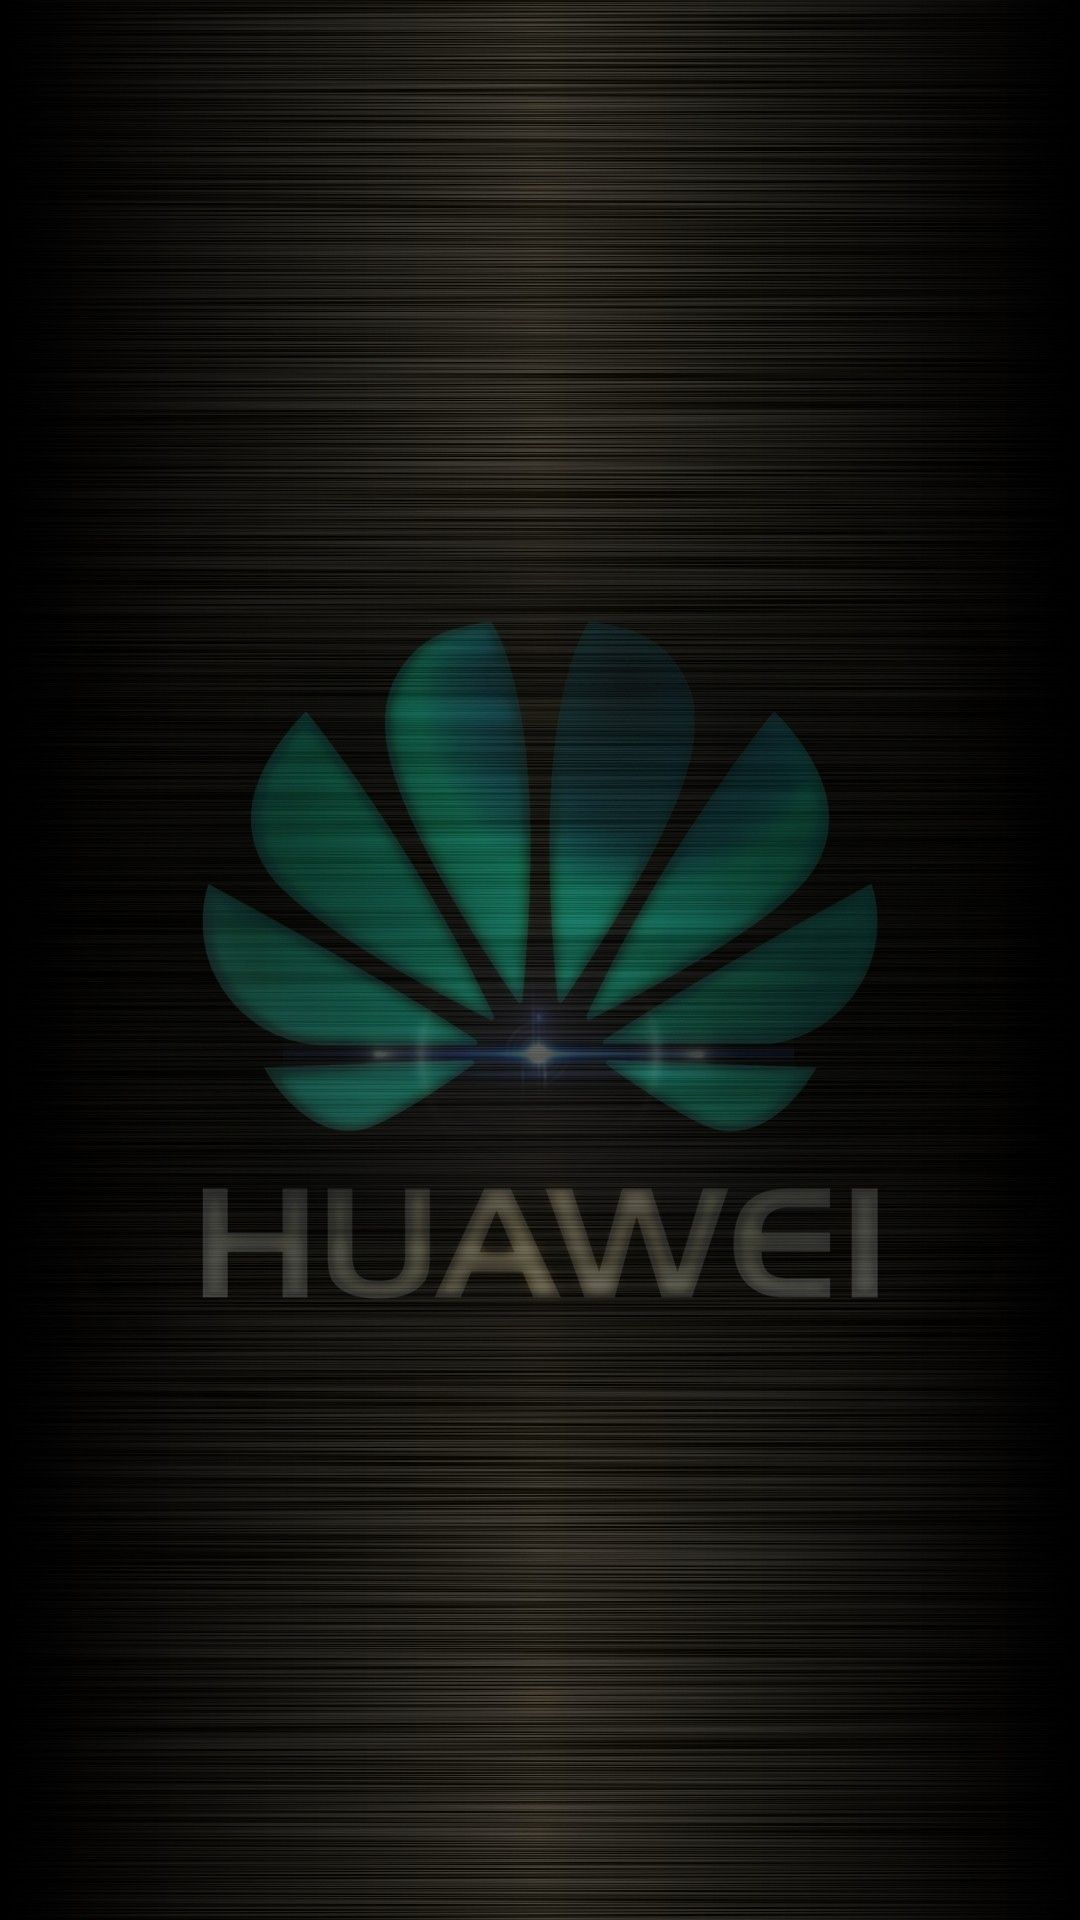 Huawei Wallpaper 1080x1920 Mobile Wallpapers Collected